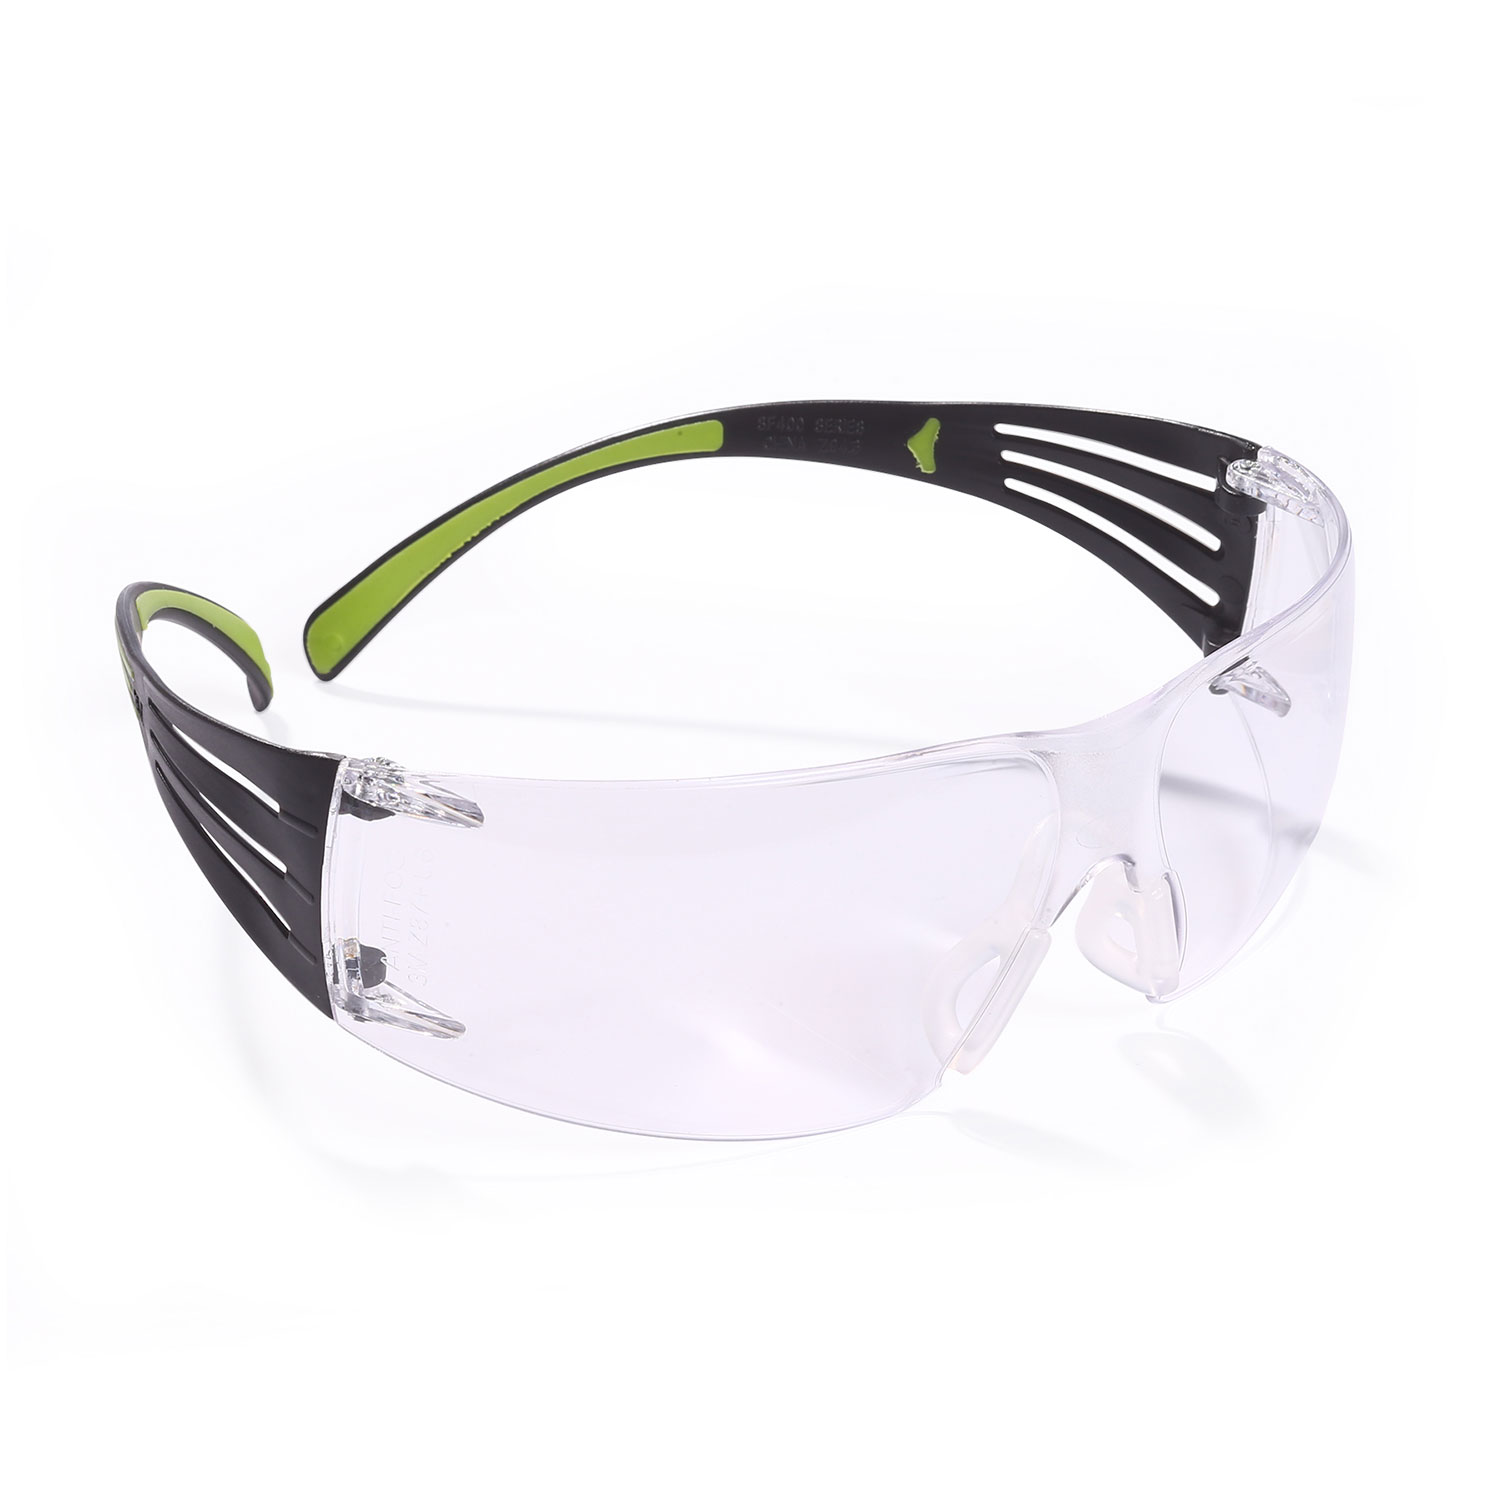 3M PELTOR Sport Securefit 400 Series Shooting Glasses